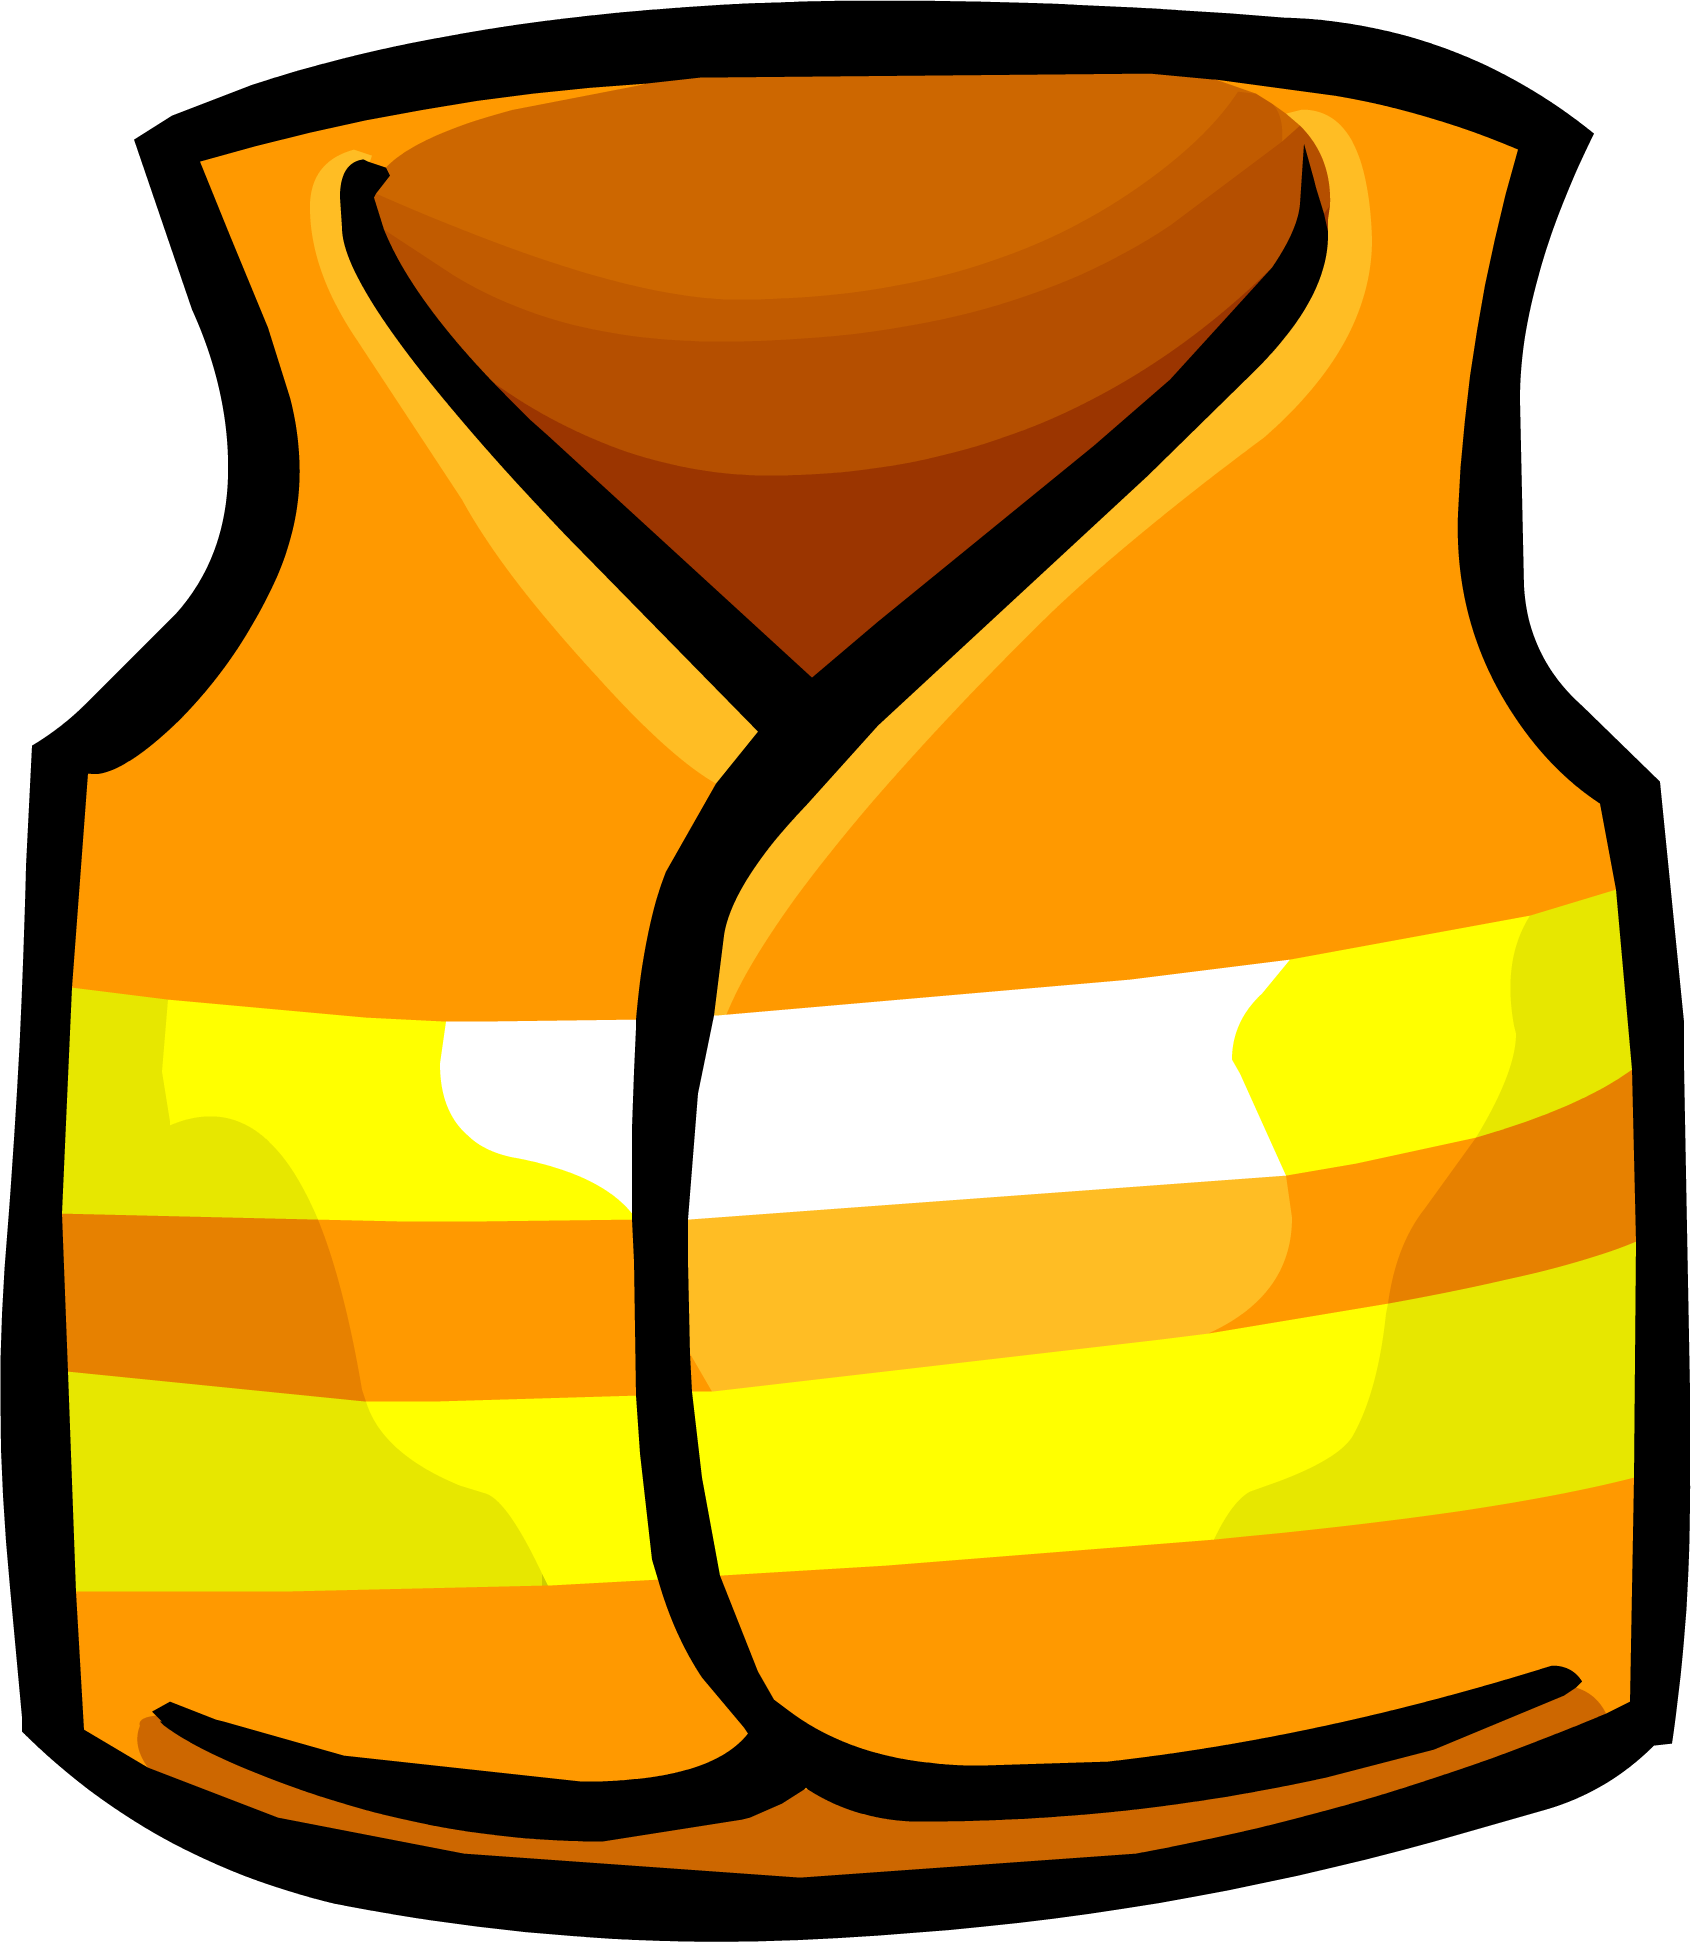 vector transparent stock Construction safety clipart. Image vest clothing icon.